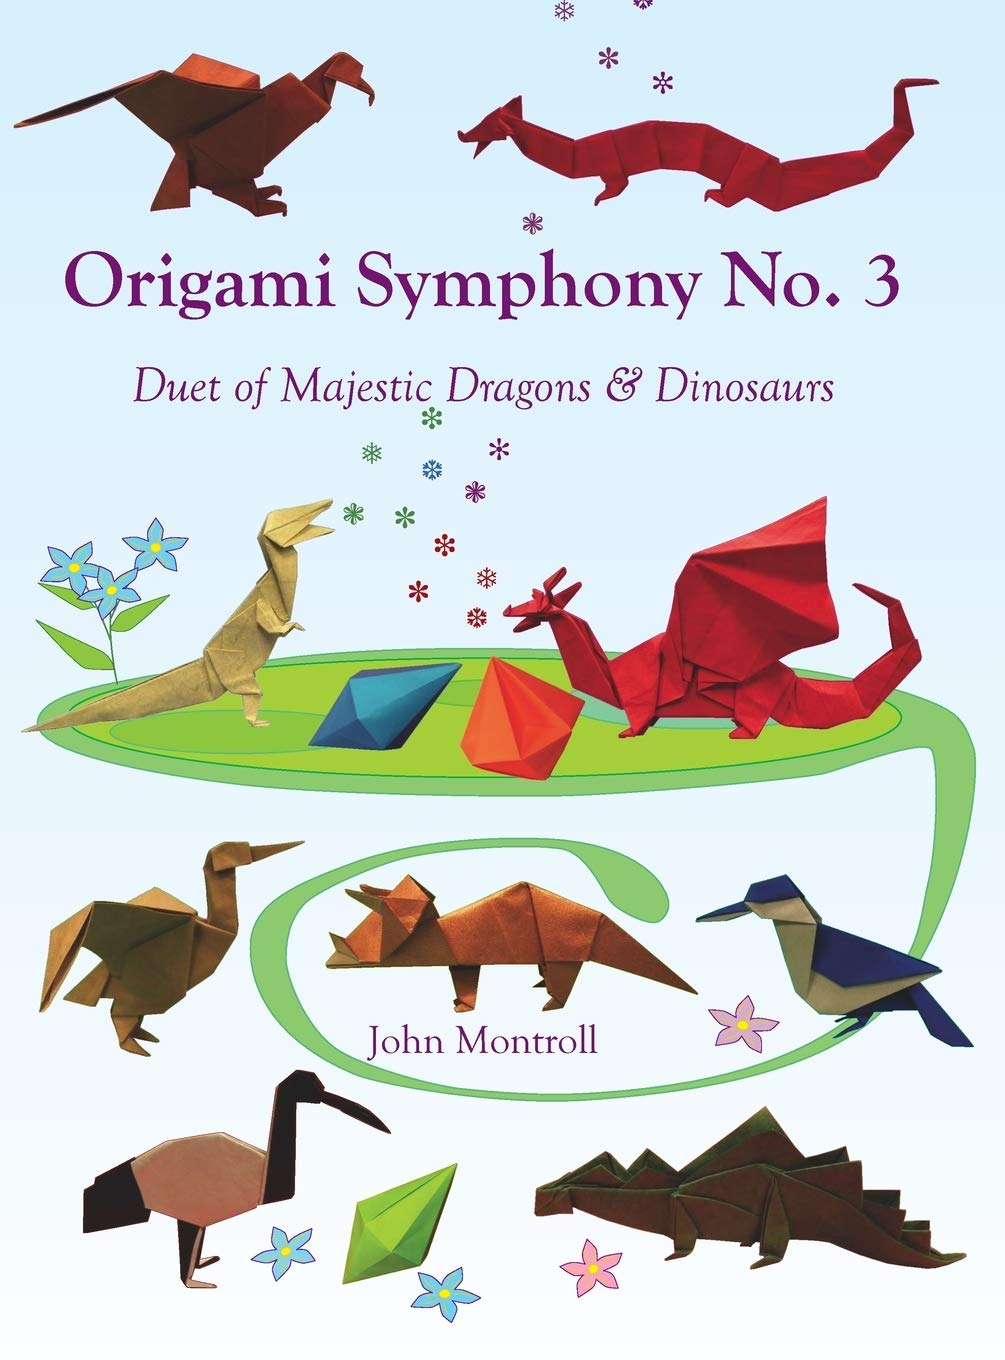 Origami Symphony No. 3: Duet of Majestic Dragons & Dinosaurs